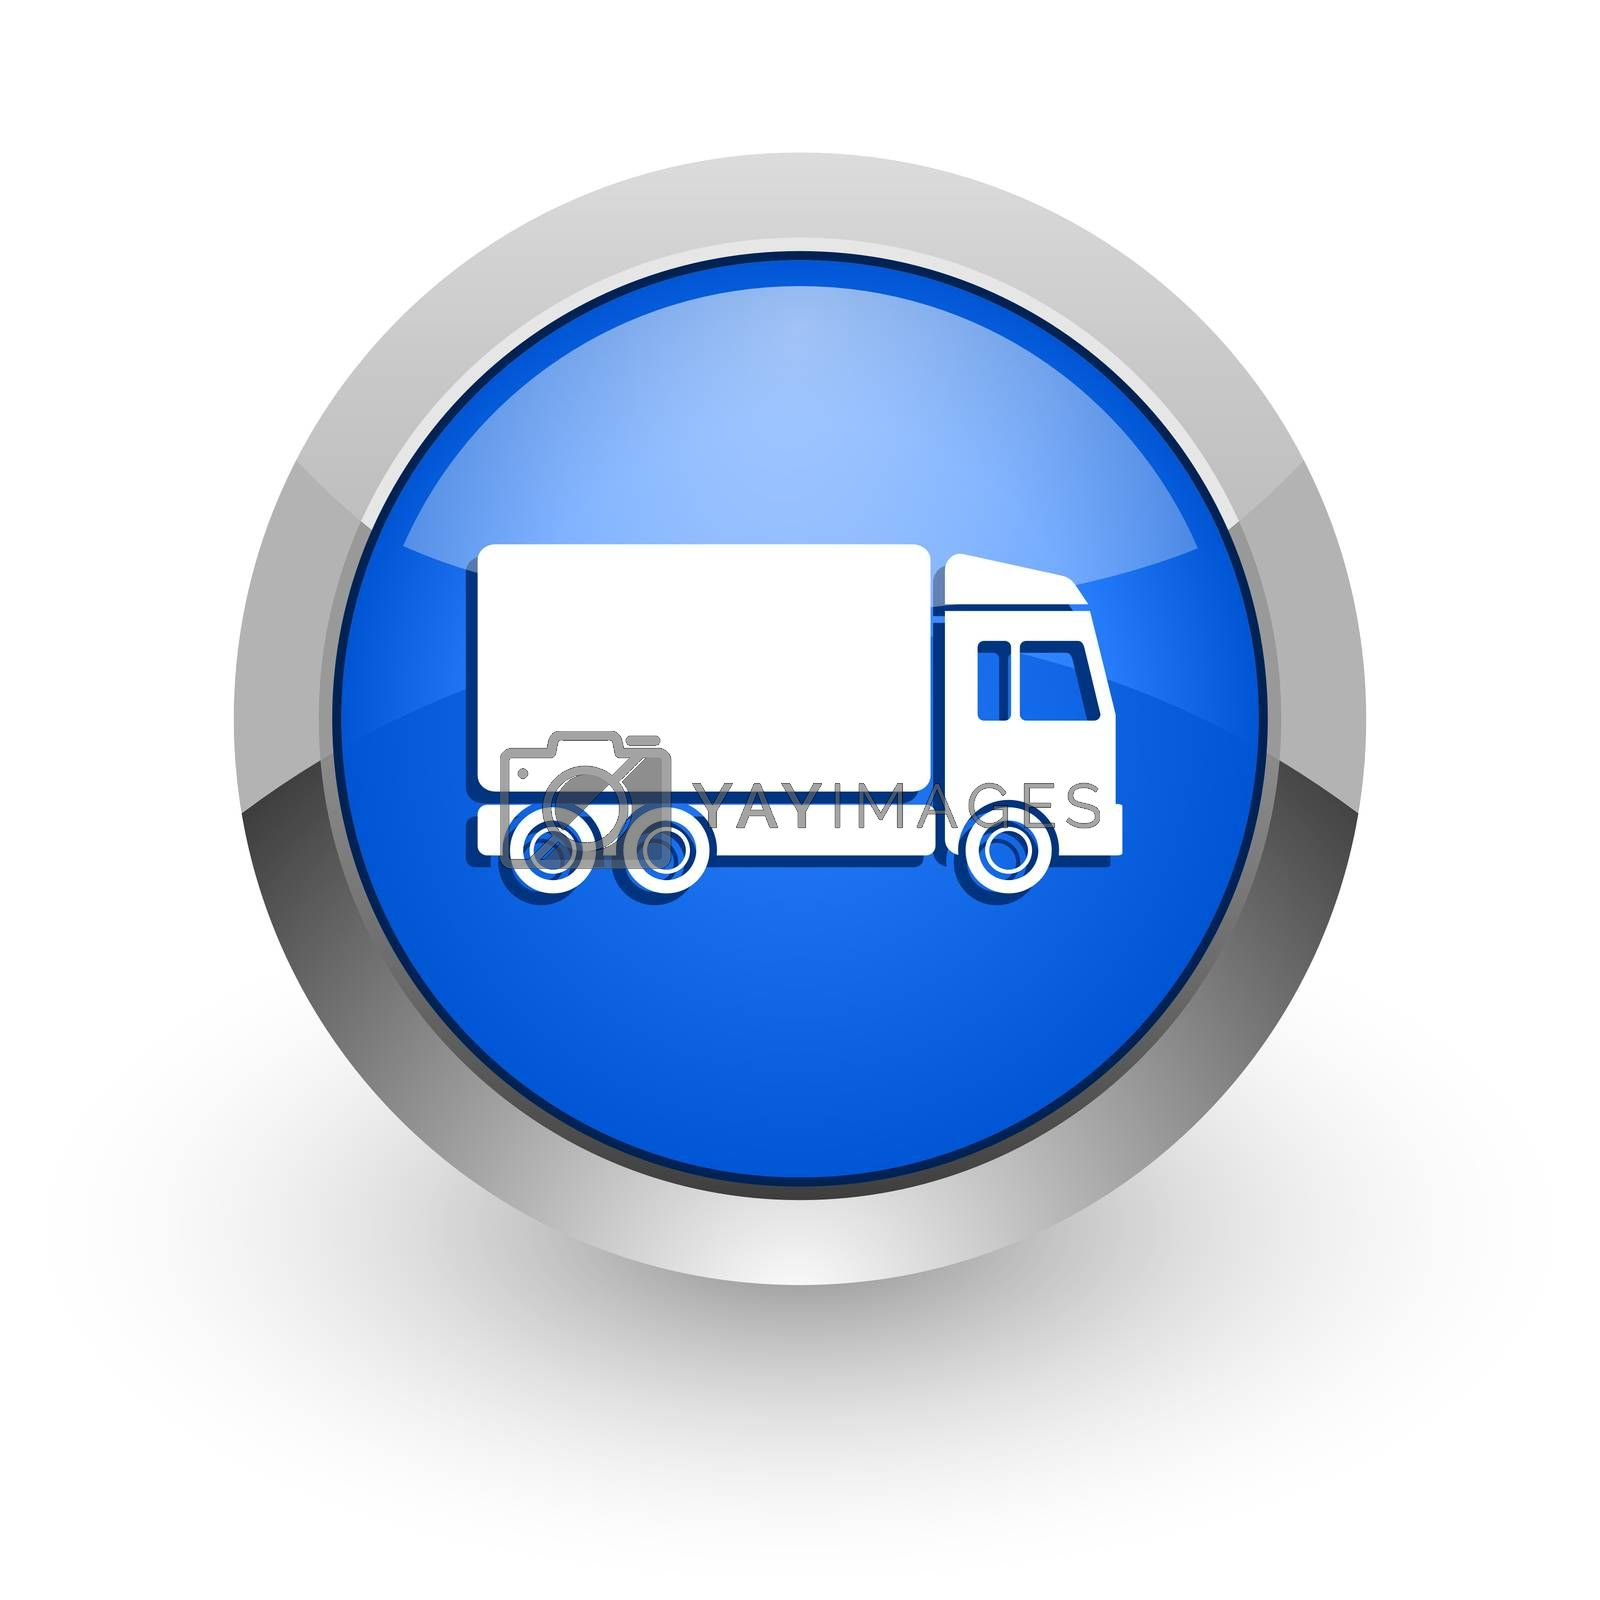 Royalty free image of delivery blue glossy web icon by alexwhite